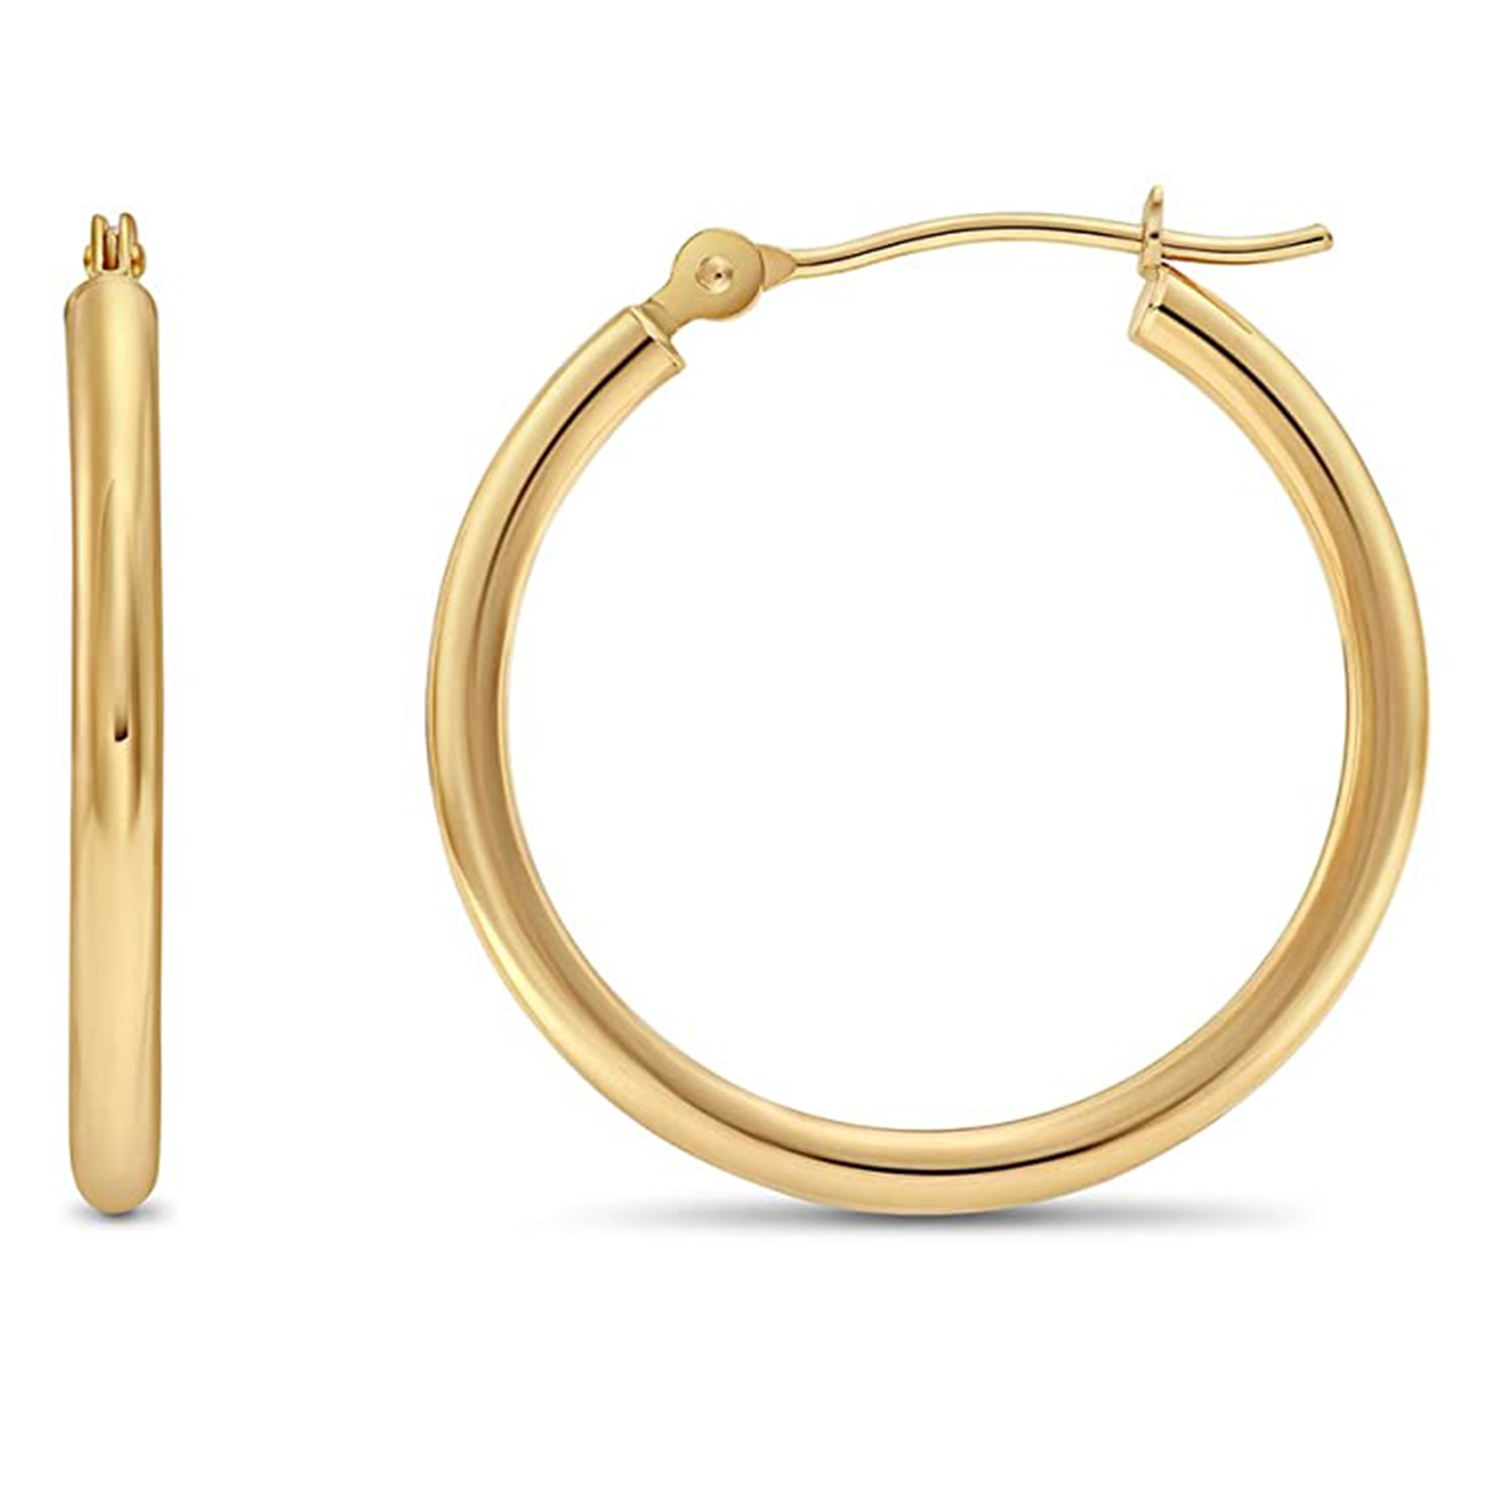 14k yellow gold classic shiny polished round hoop earrings 22mm